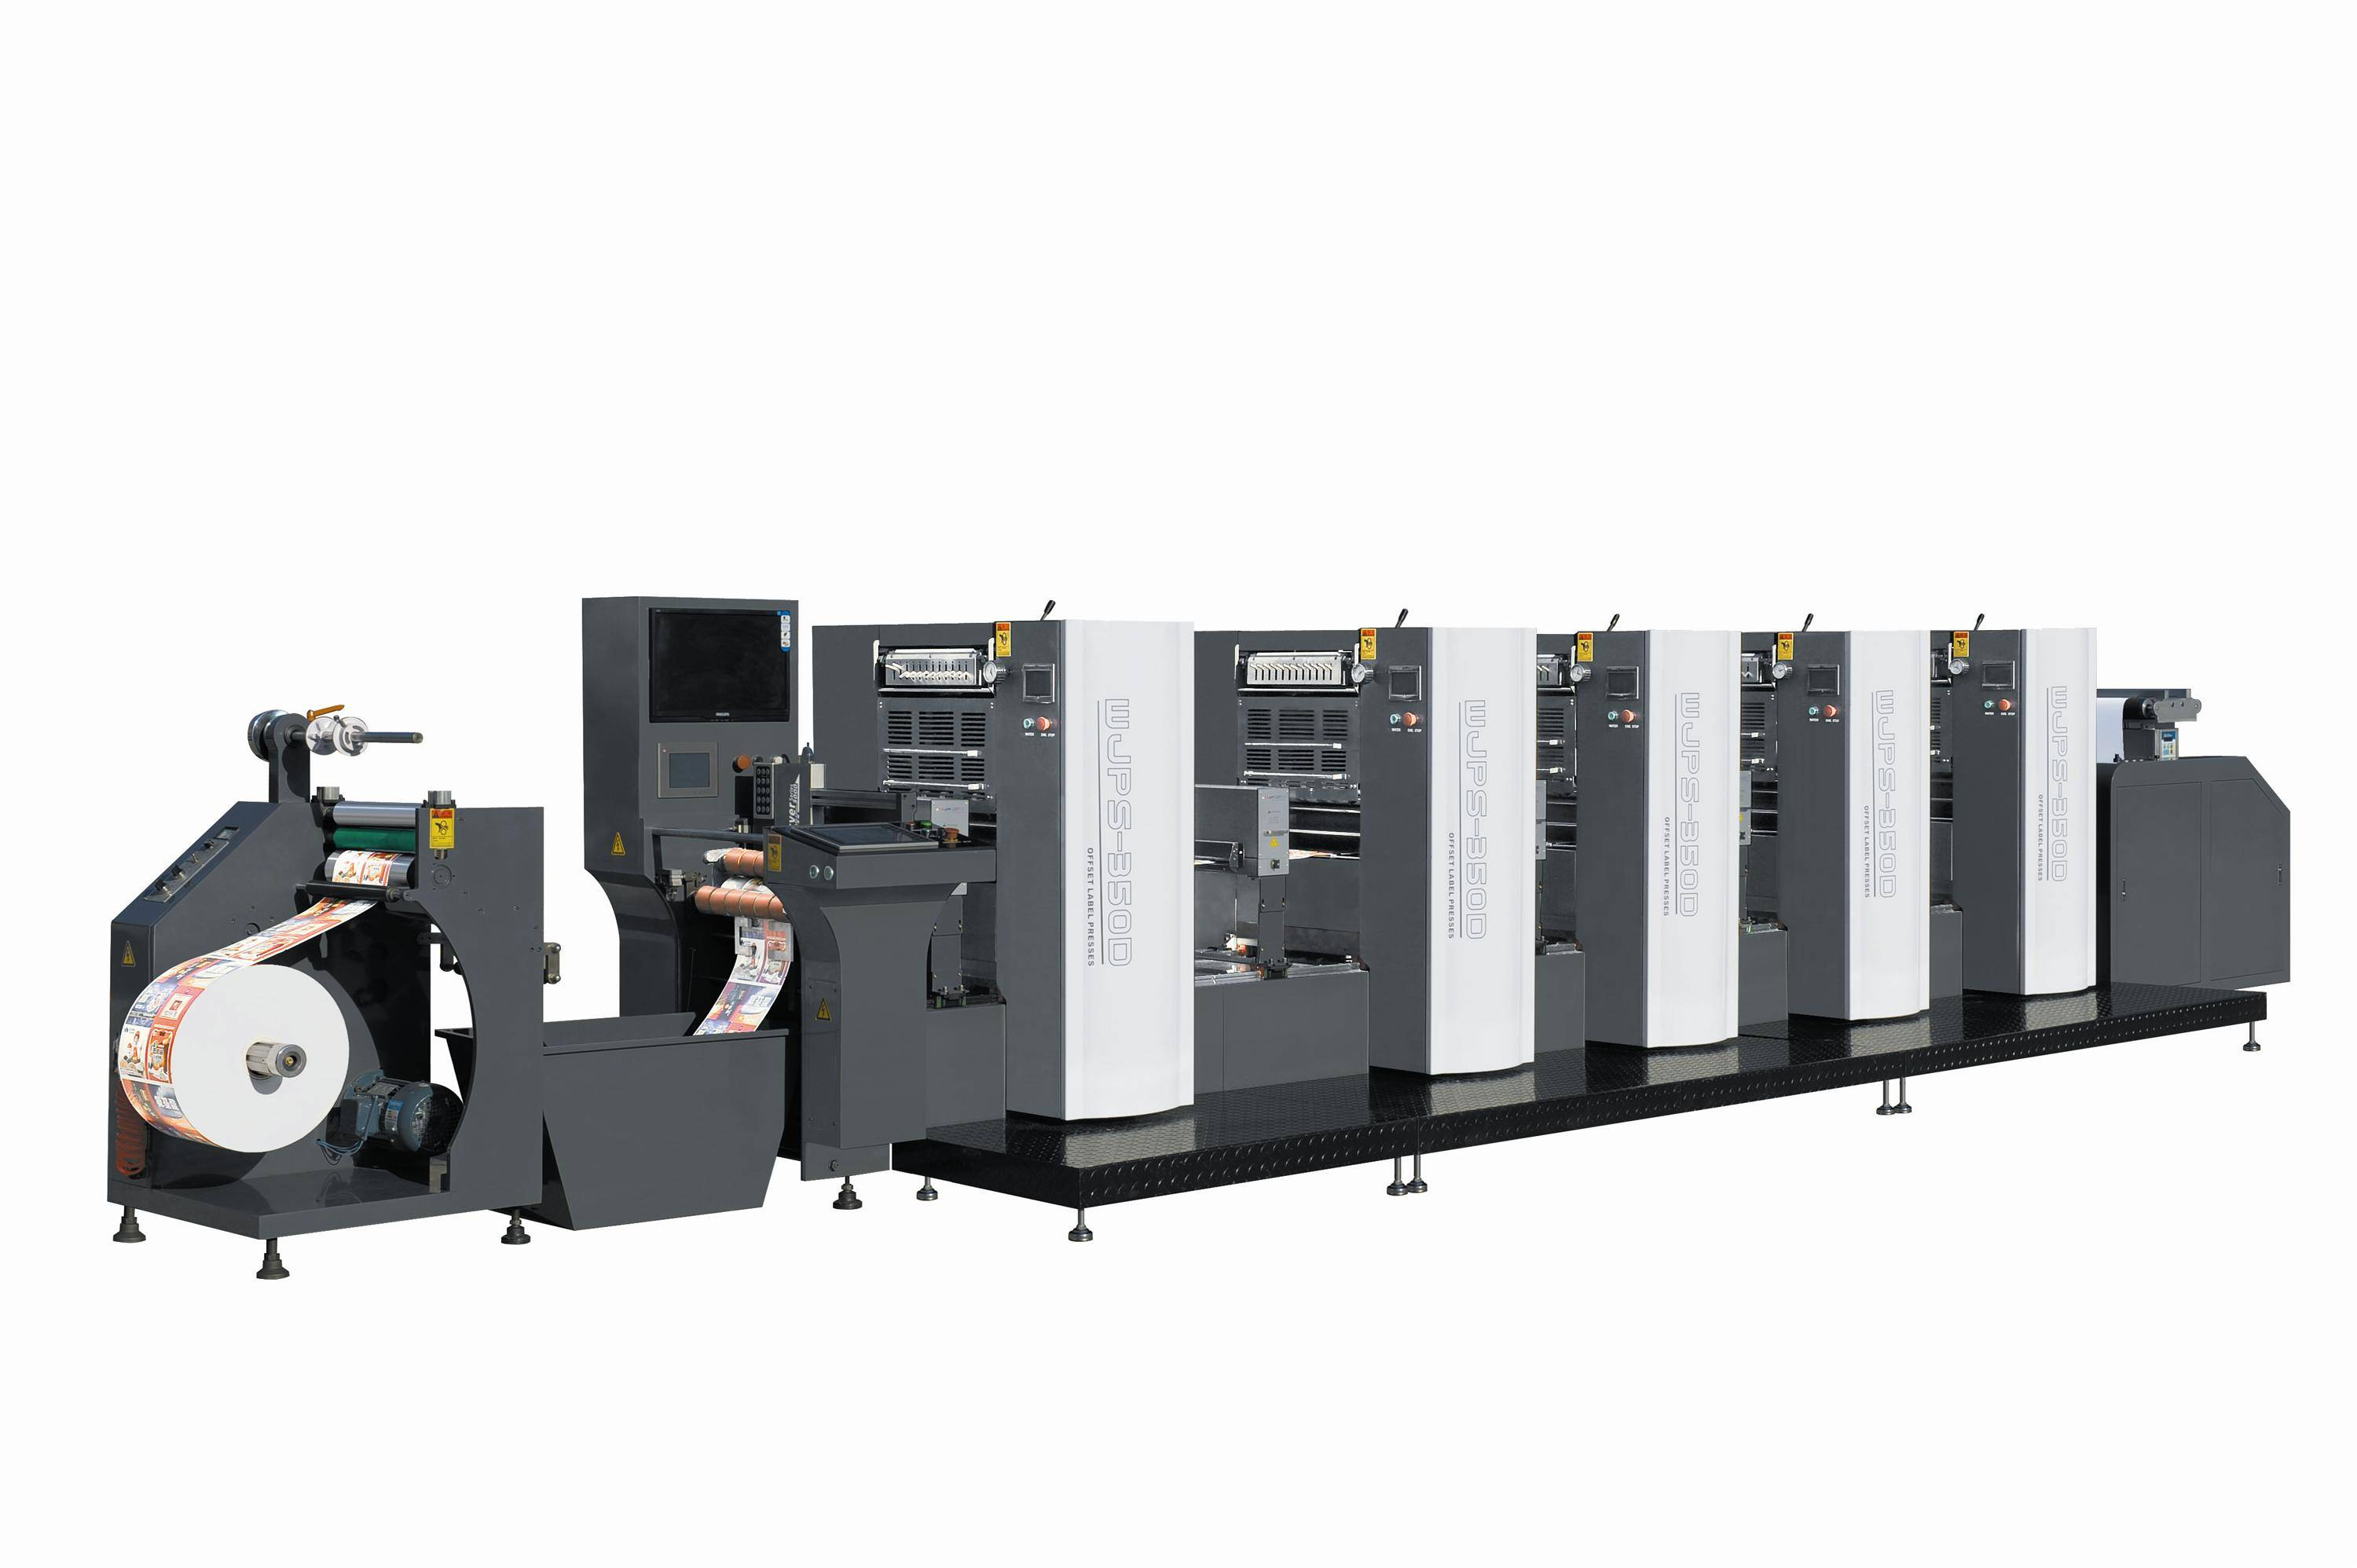 WJPS-350 Shaftless Offset (Dampening System)  Intermittent Rotary Label Printing Machine